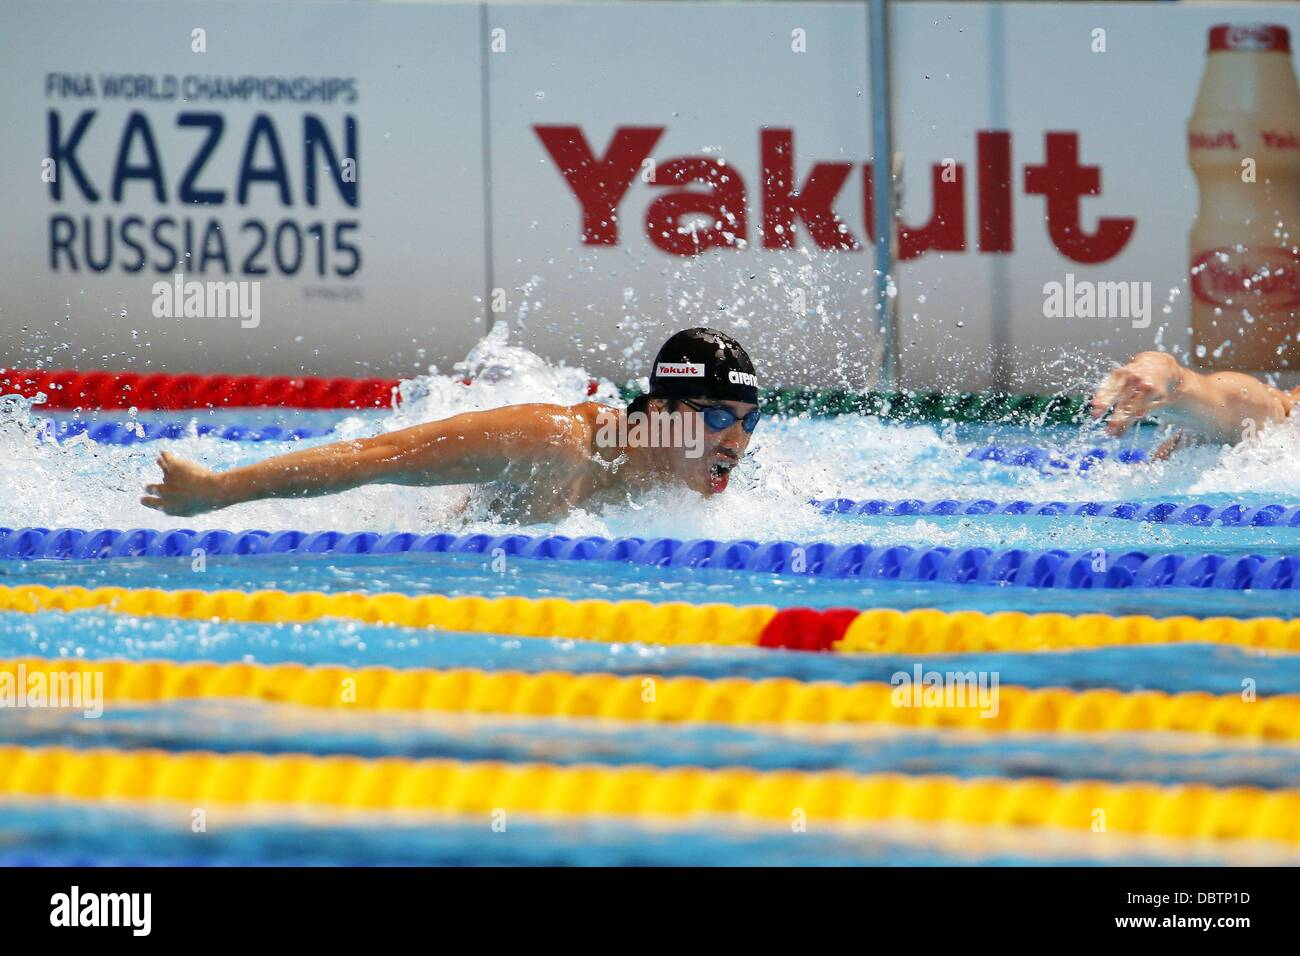 Barcelona, Spain. 4th Aug, 2013. Takuro Fujii (JPN) Swimming : Japan's Takuro Fujii swims in a Men's 4x100m - Stock Image